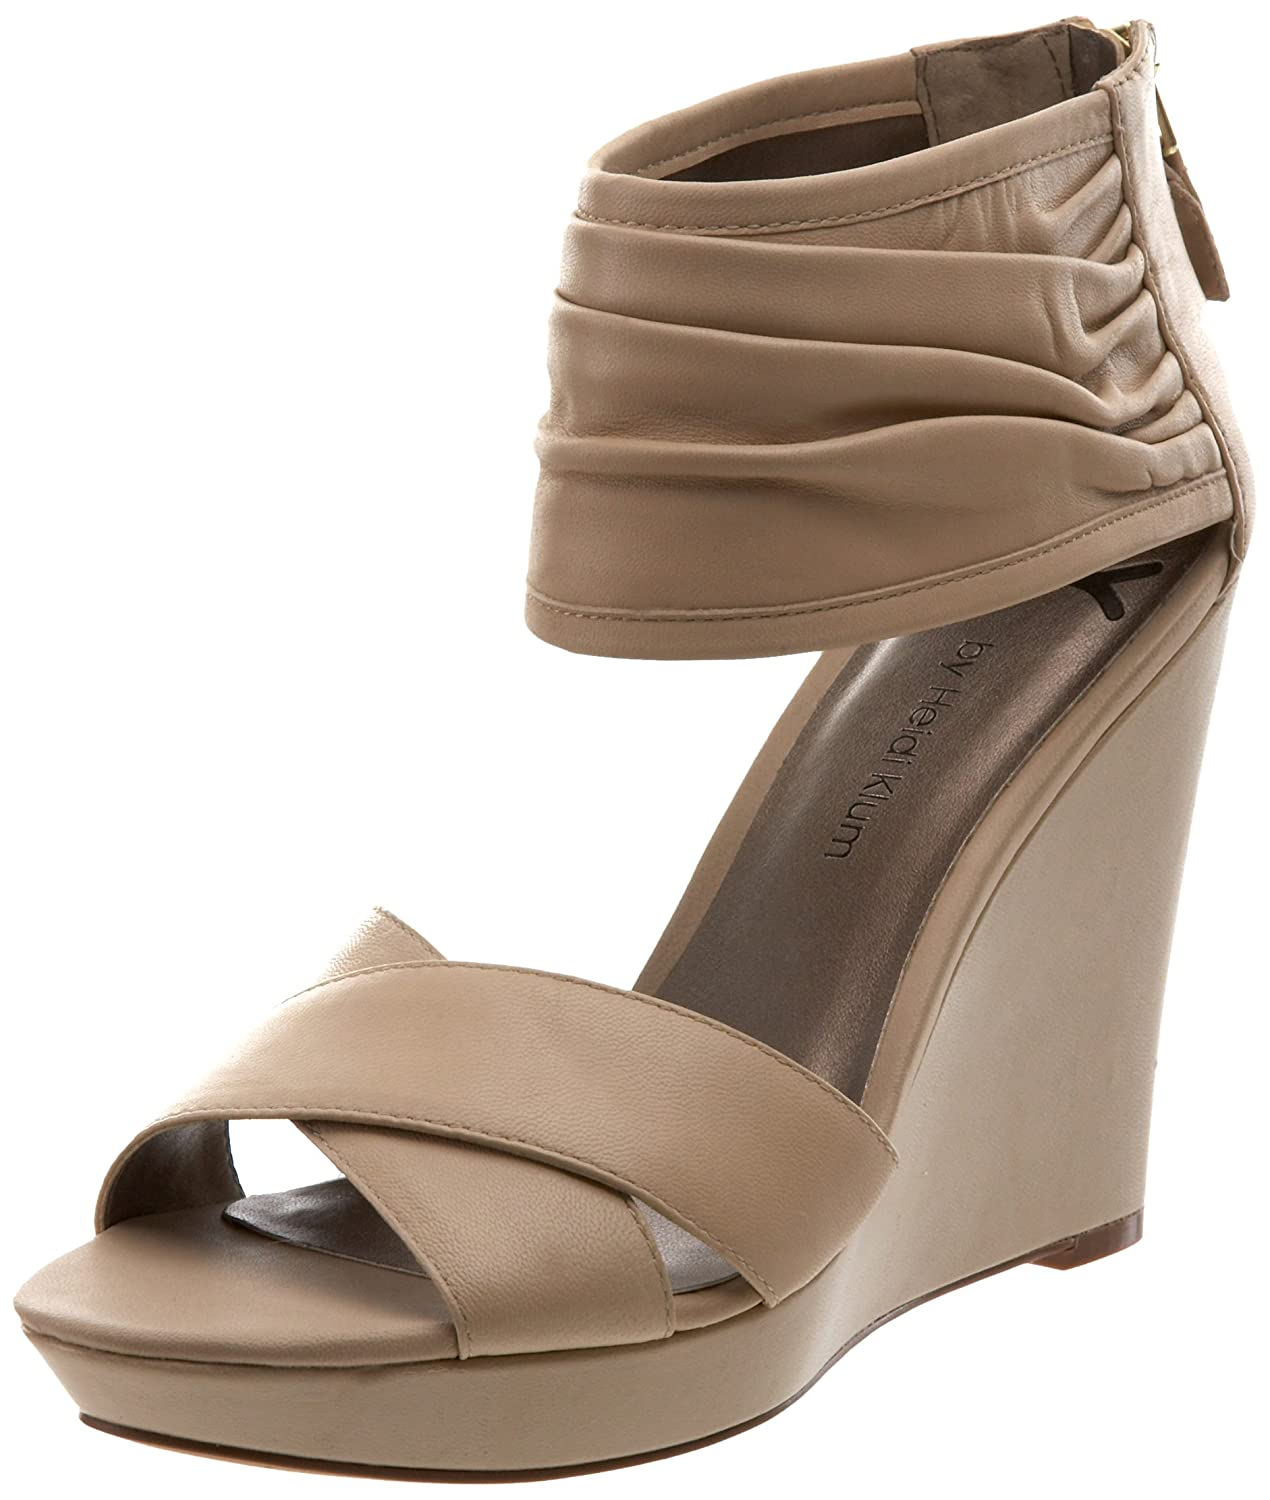 624aa96a2d HK by Heidi Klum Women's Chloe Wedge Sandal